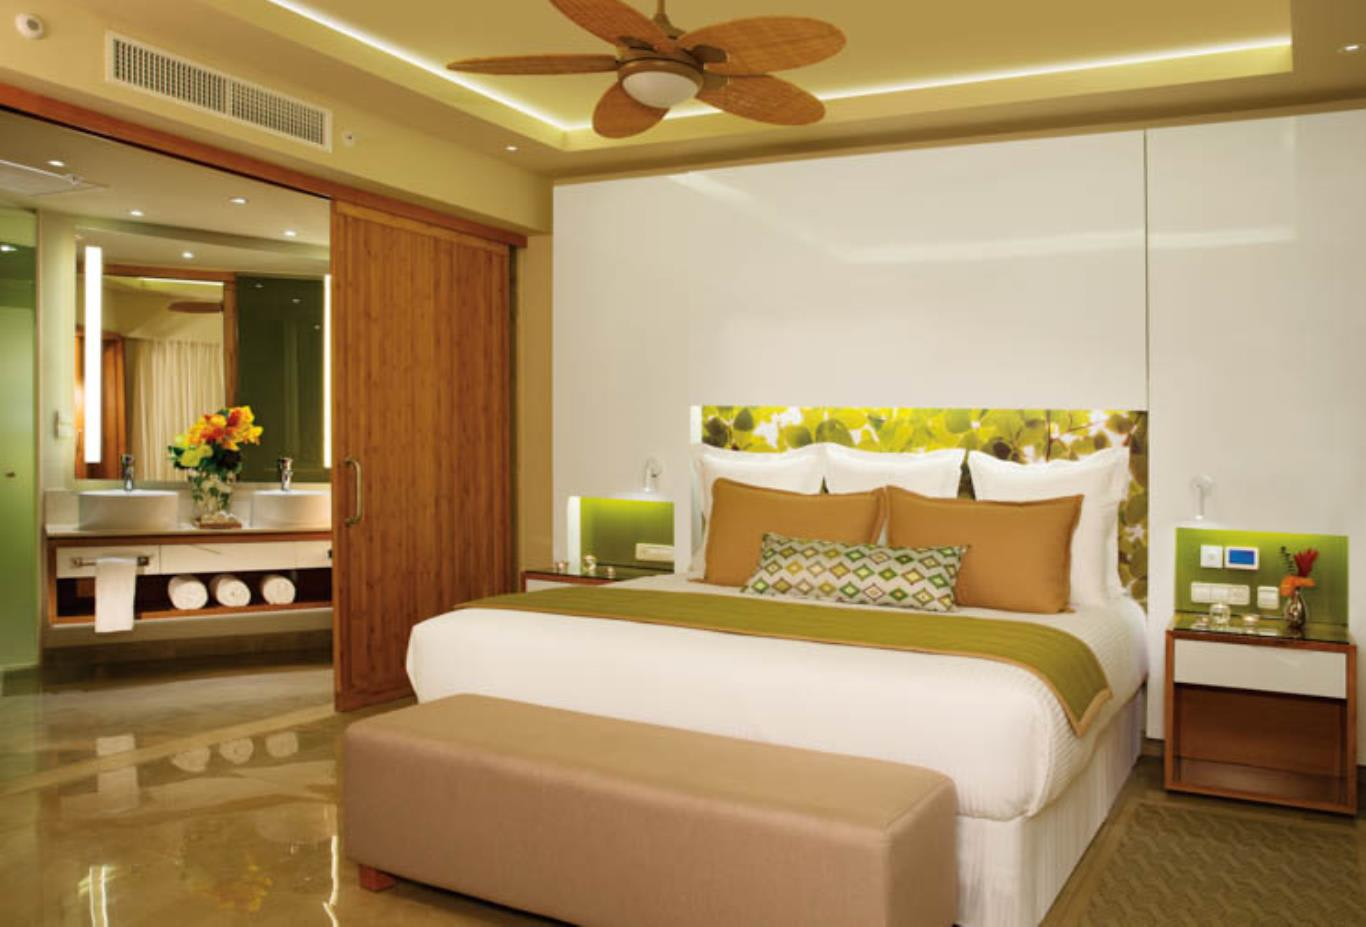 Preferred Club Master Suite bedroom